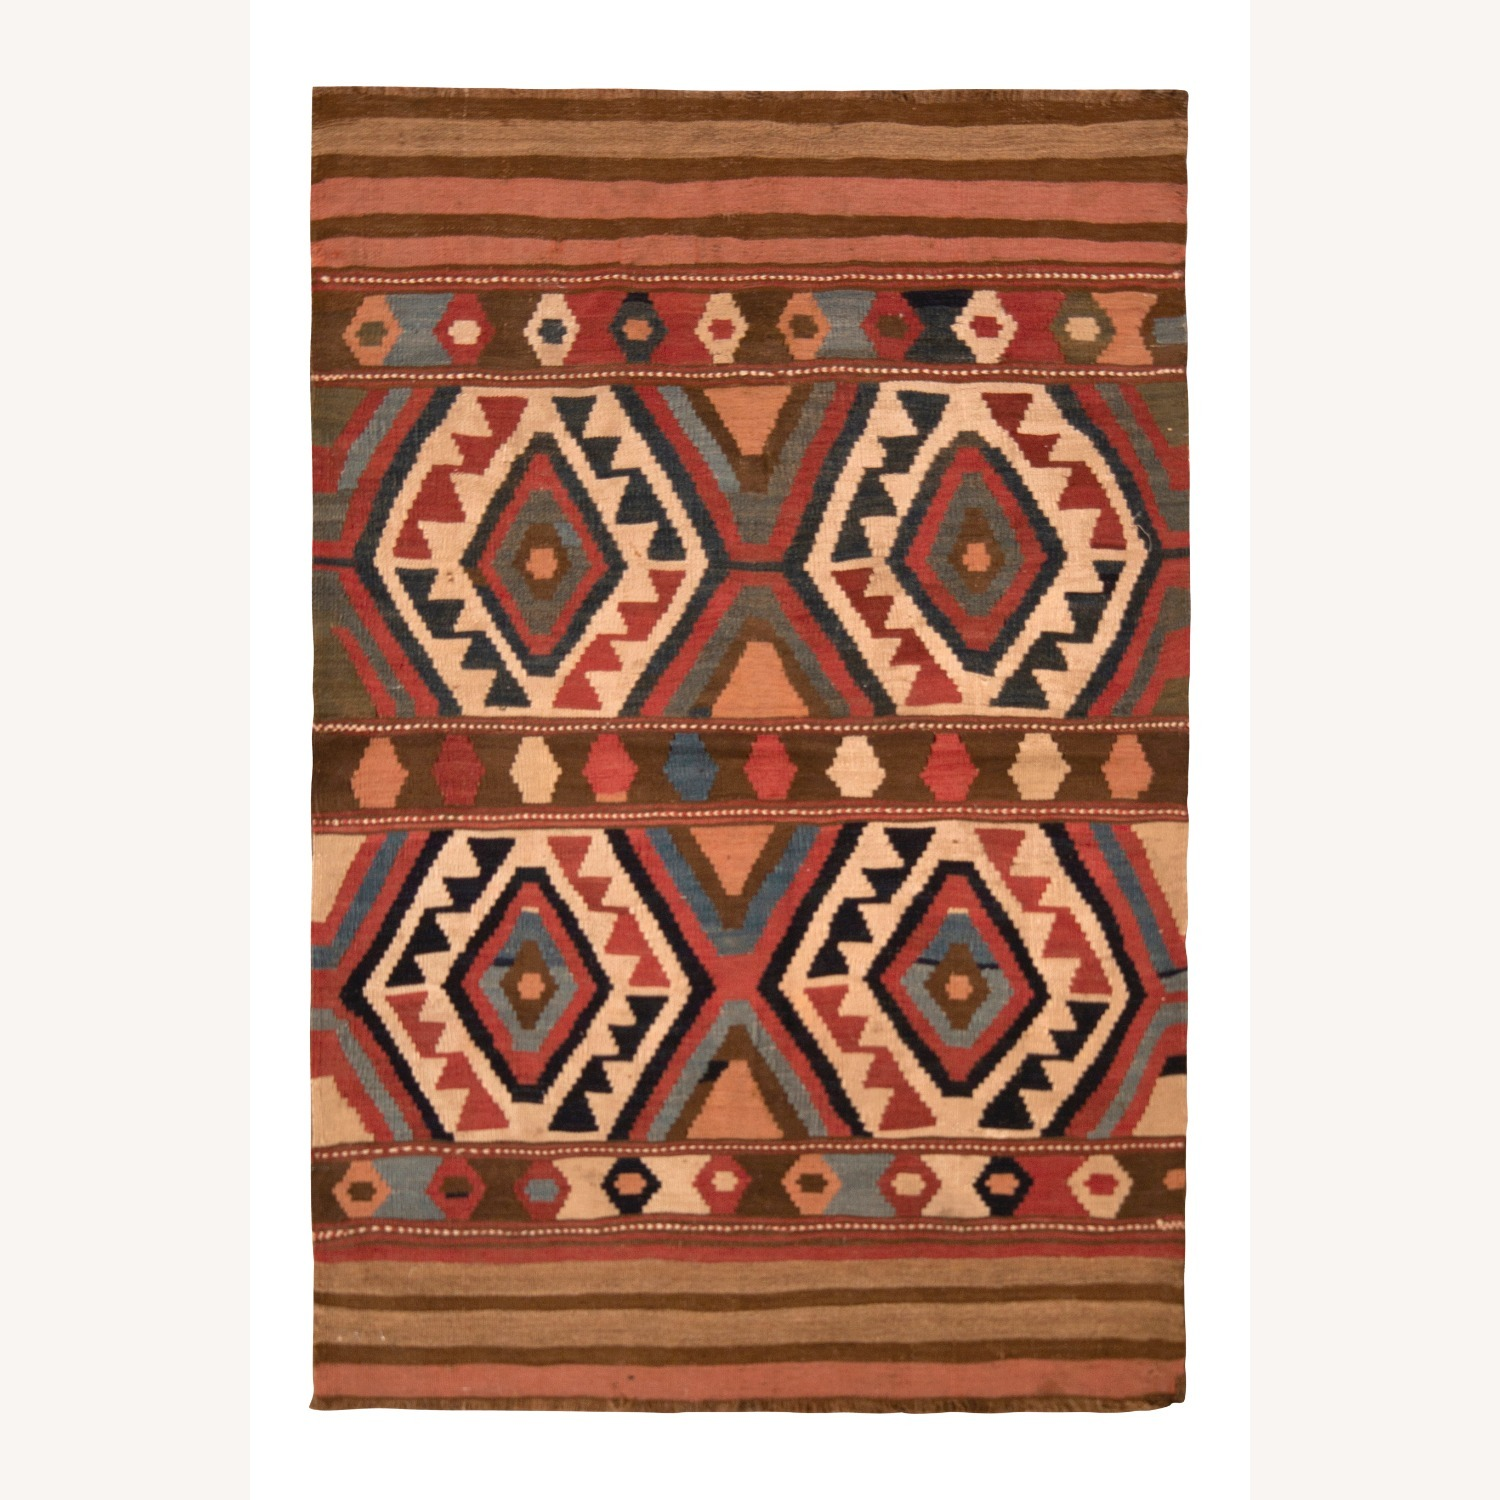 Antique Shahsavan Rug Transitional Tribal Pattern - image-1